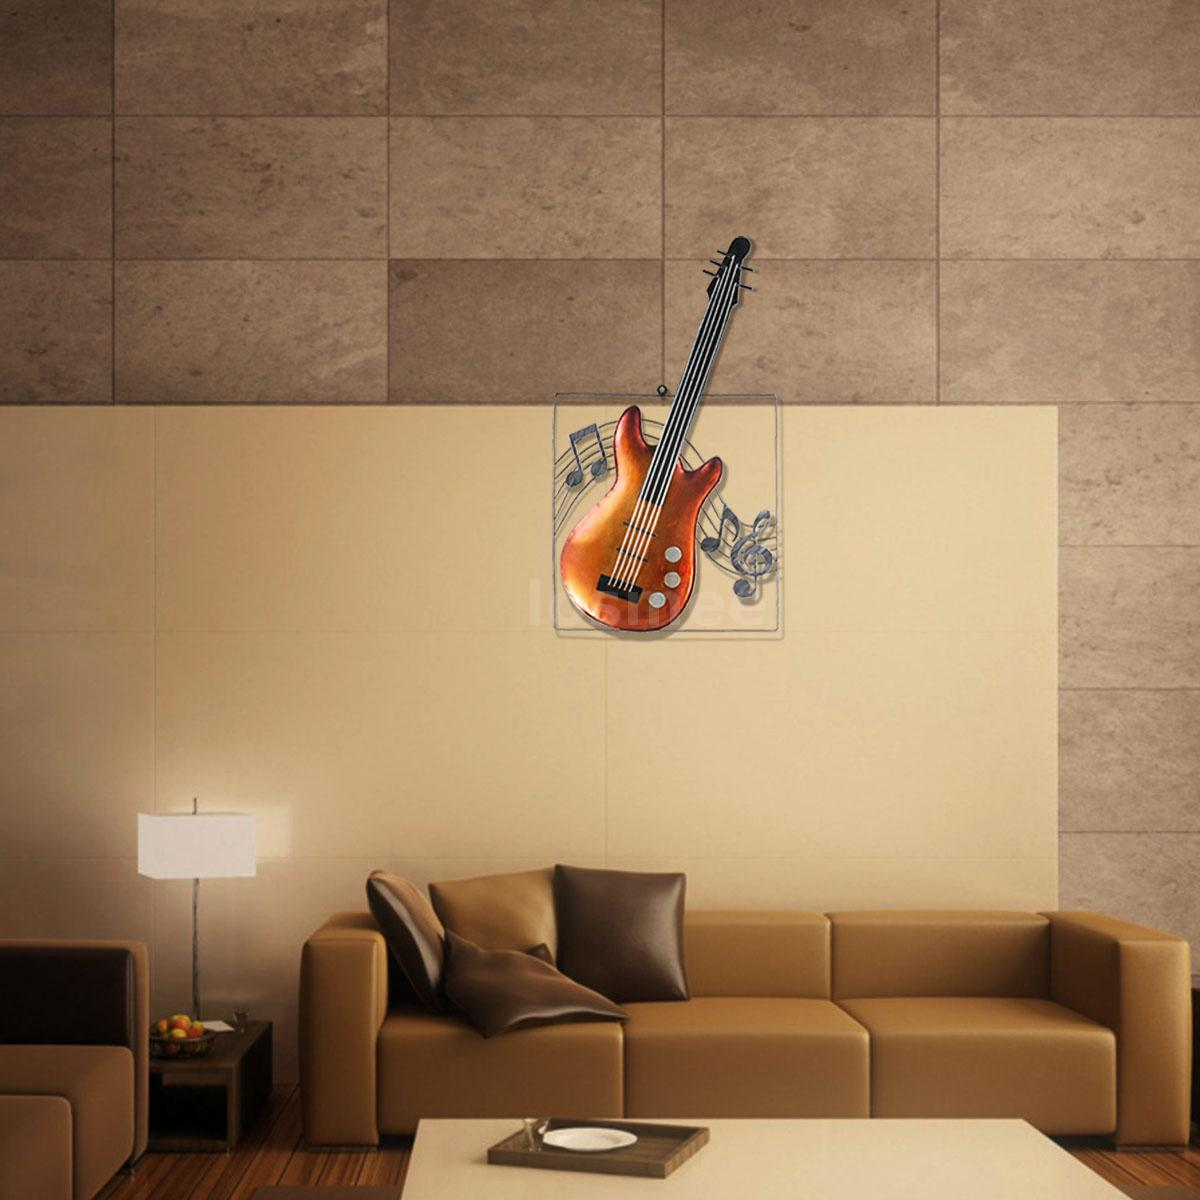 Famous Wall Hanging Decor Images - The Wall Art Decorations ...